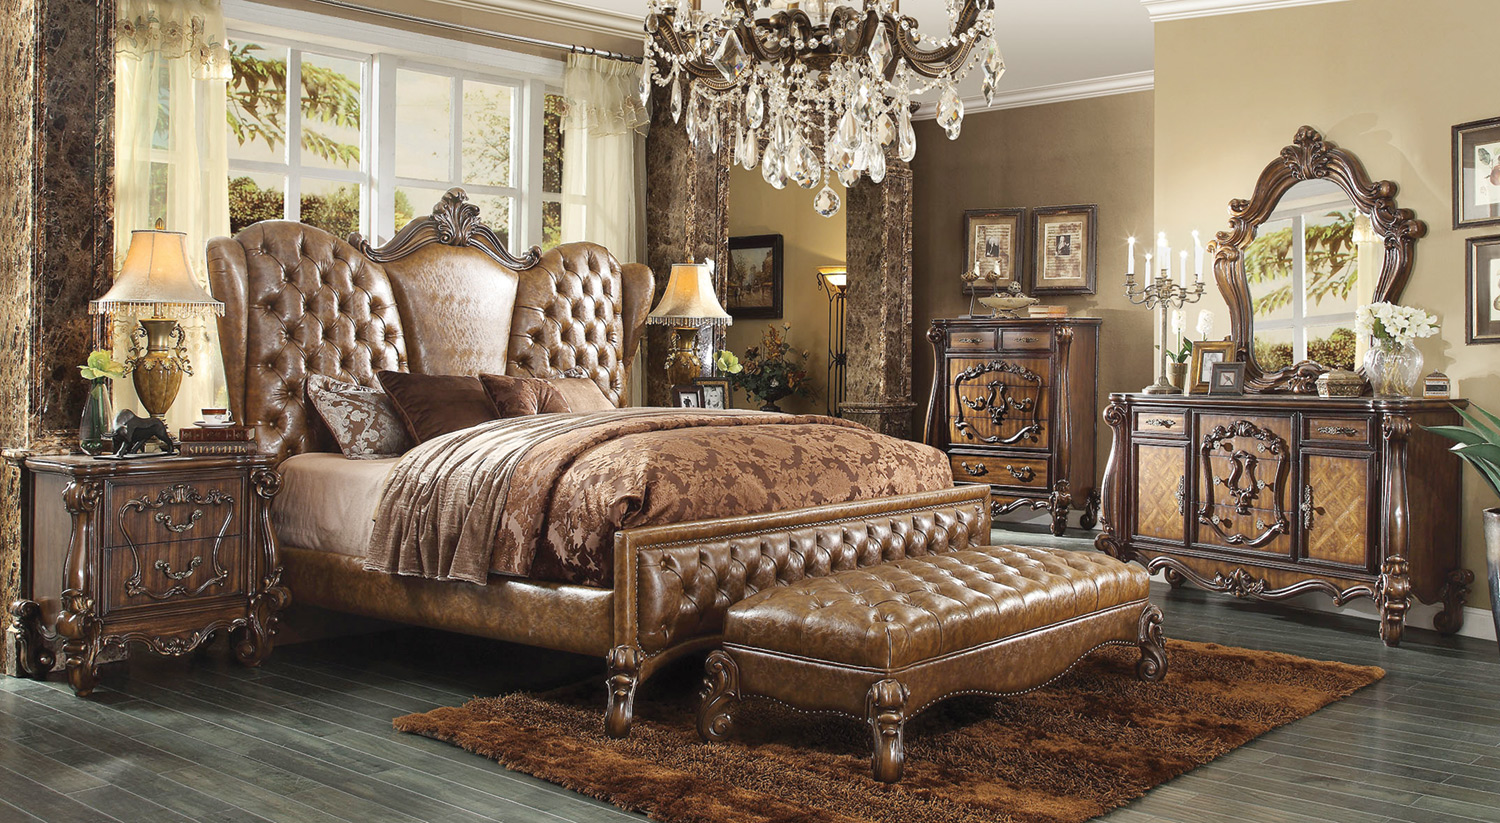 furniture-bedroom.jpg